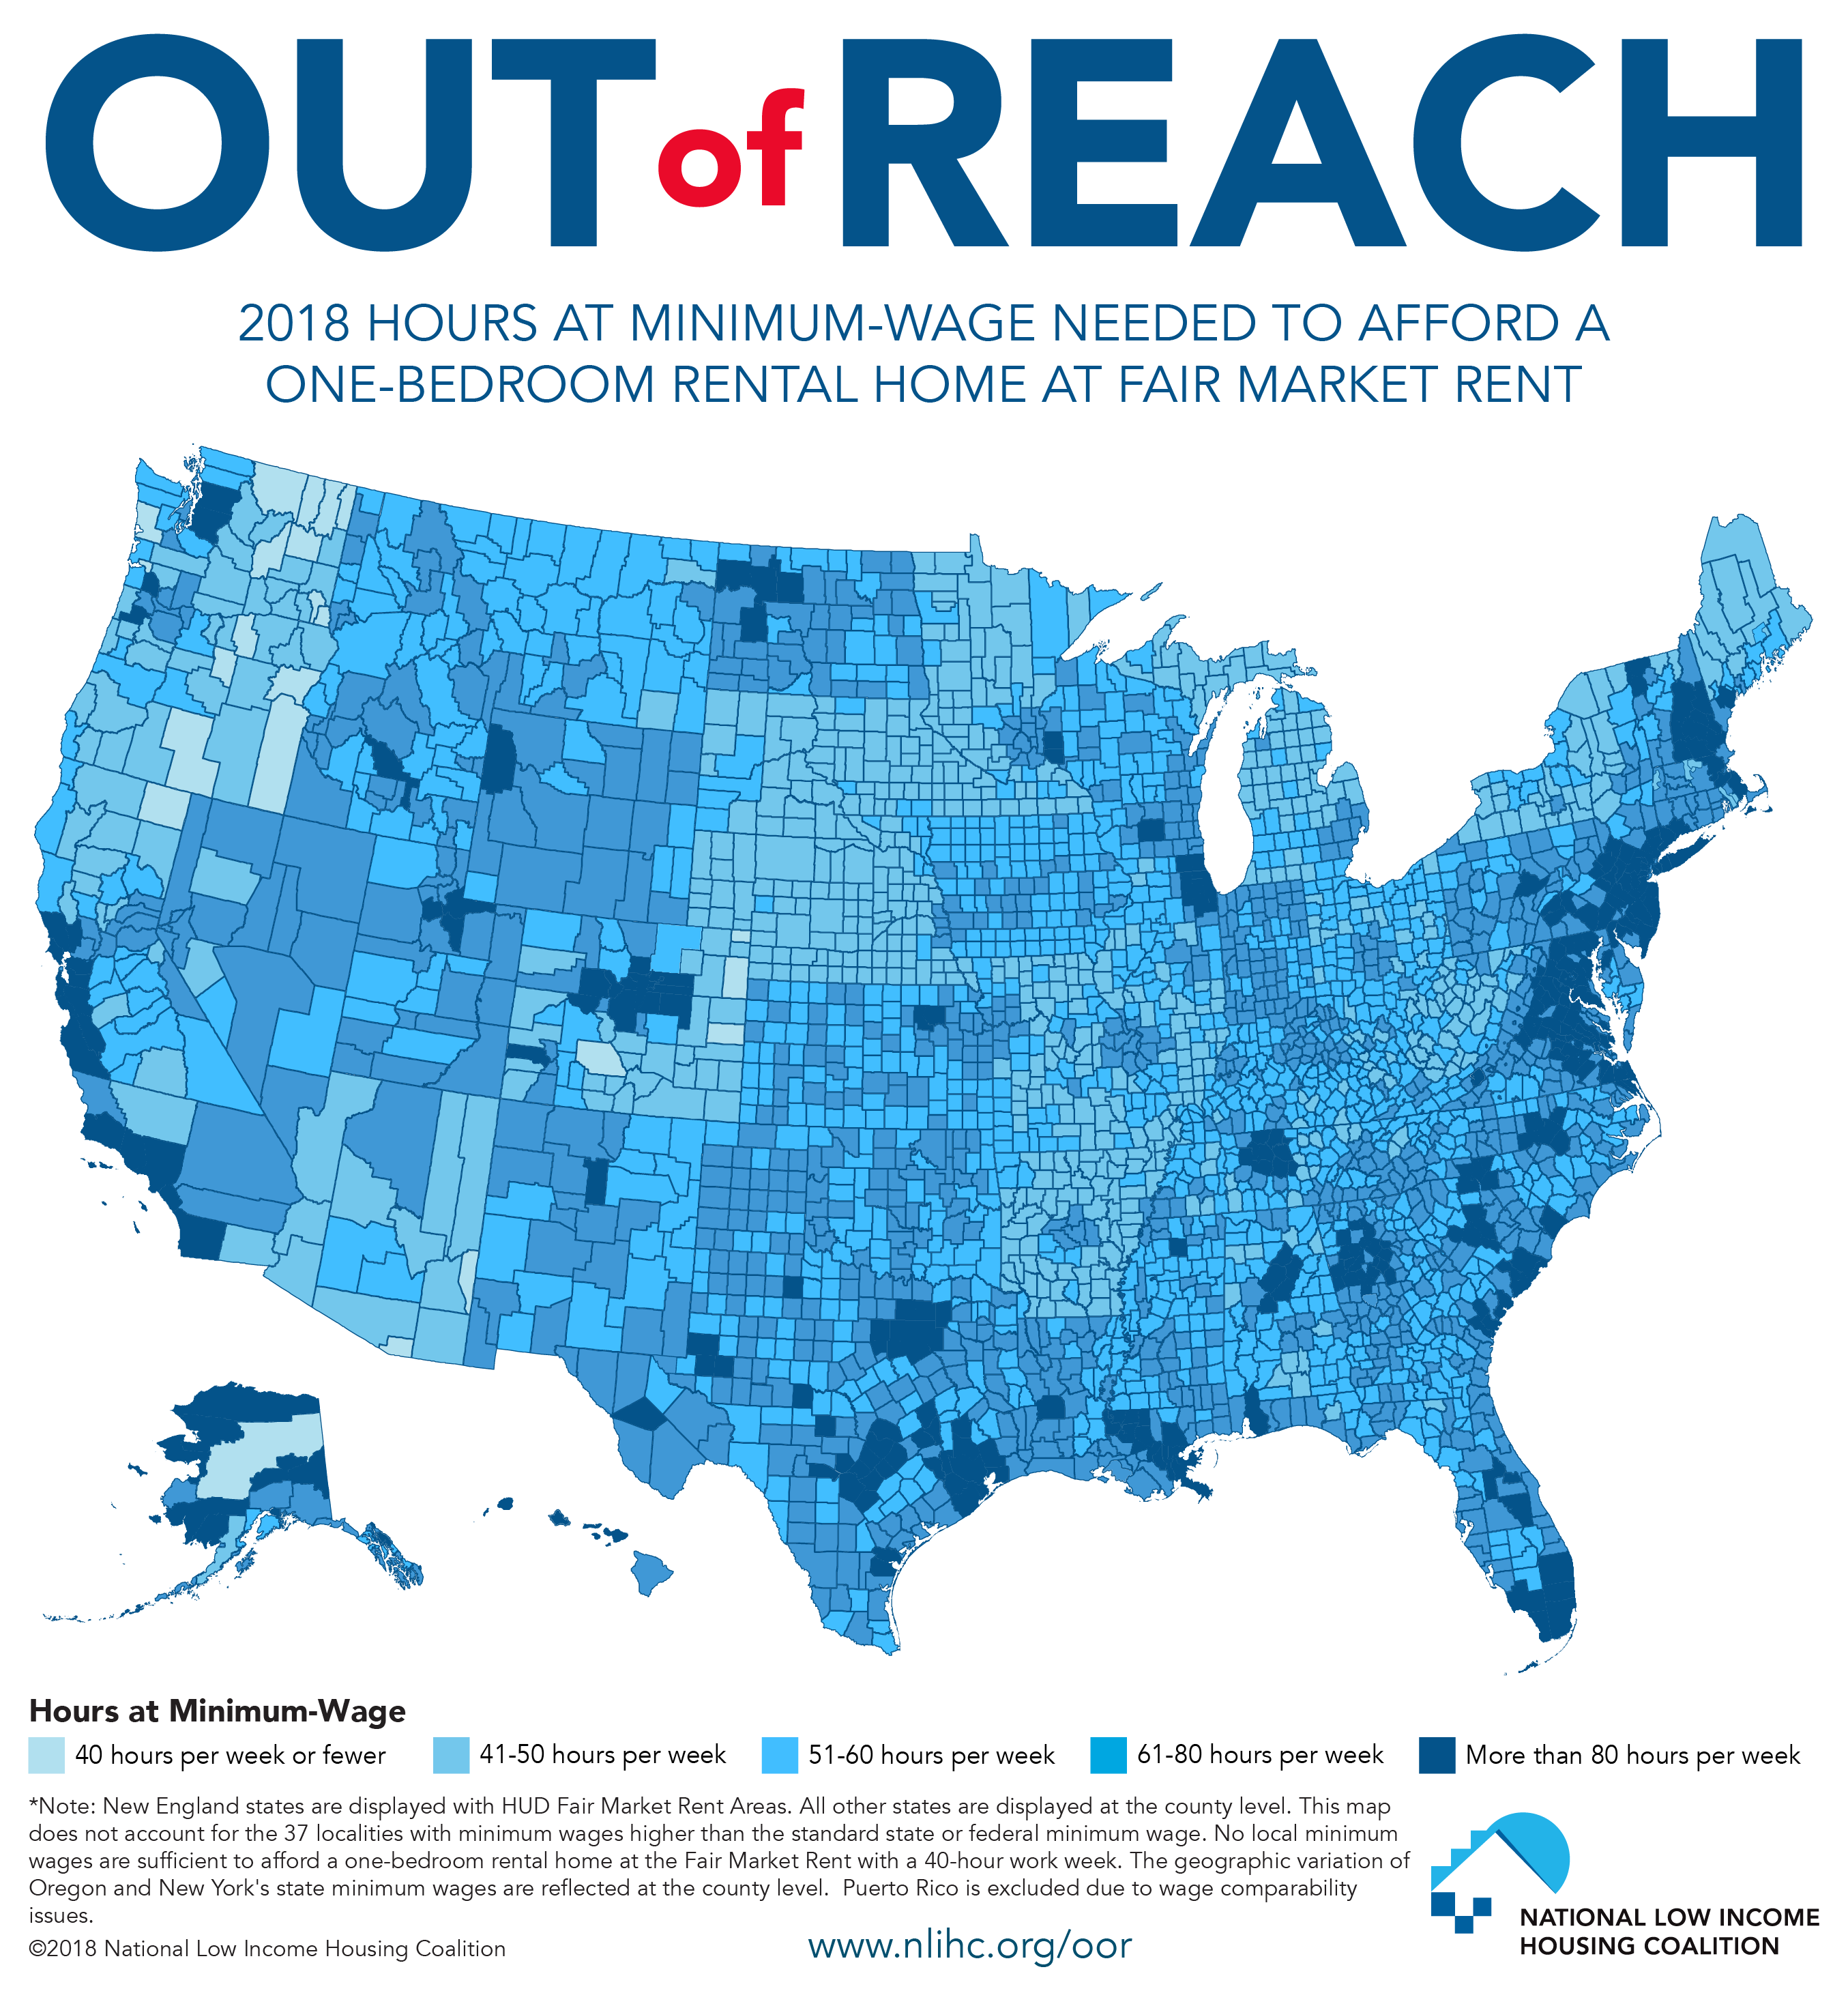 2018 Hours at Minimum Wage Needed to Afford Rent